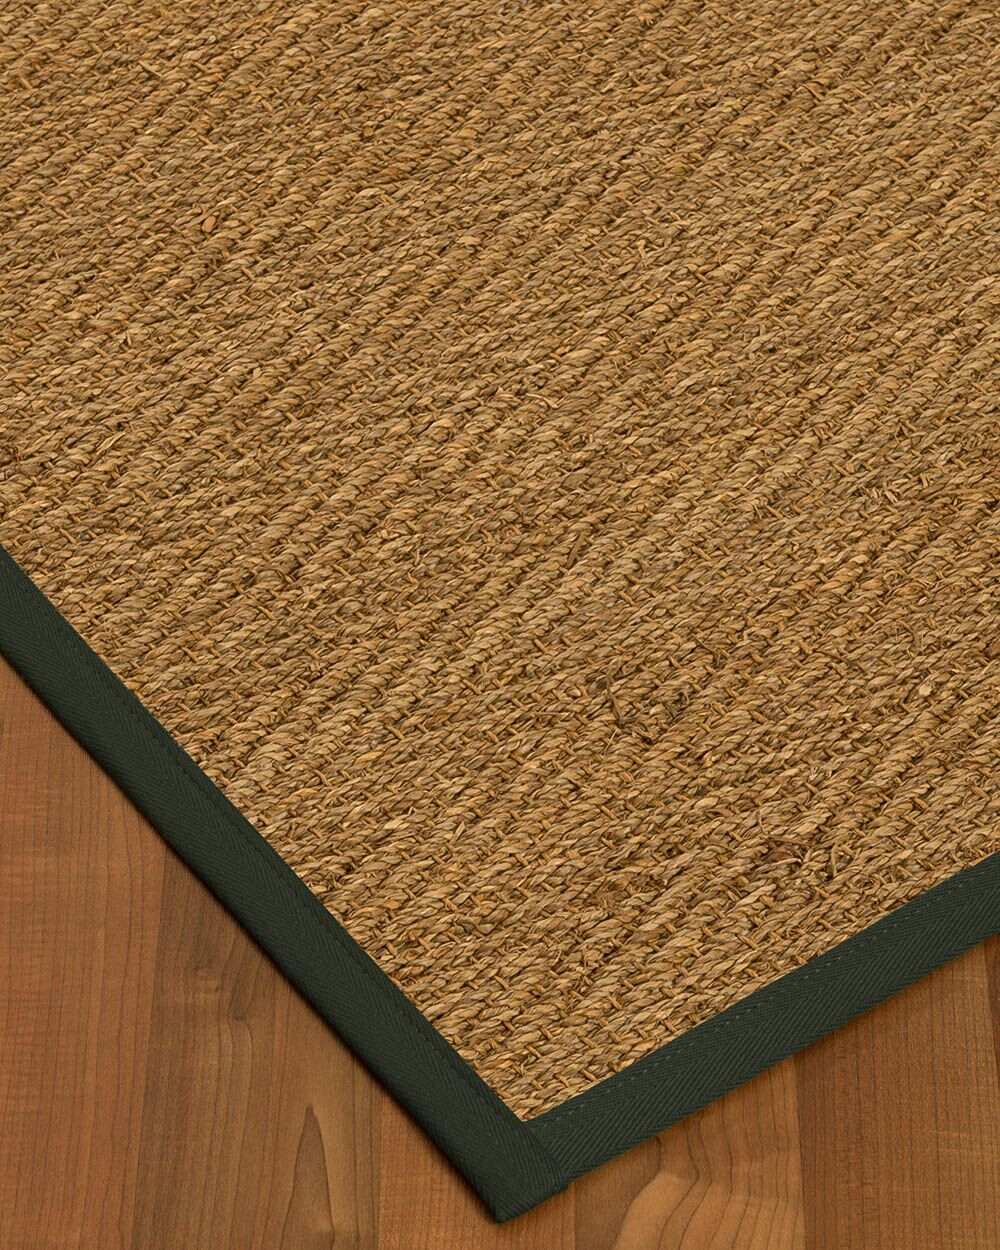 Kennett Border Hand-Woven Brown/Black Area Rug Rug Size: Rectangle 4' x 6', Rug Pad Included: Yes